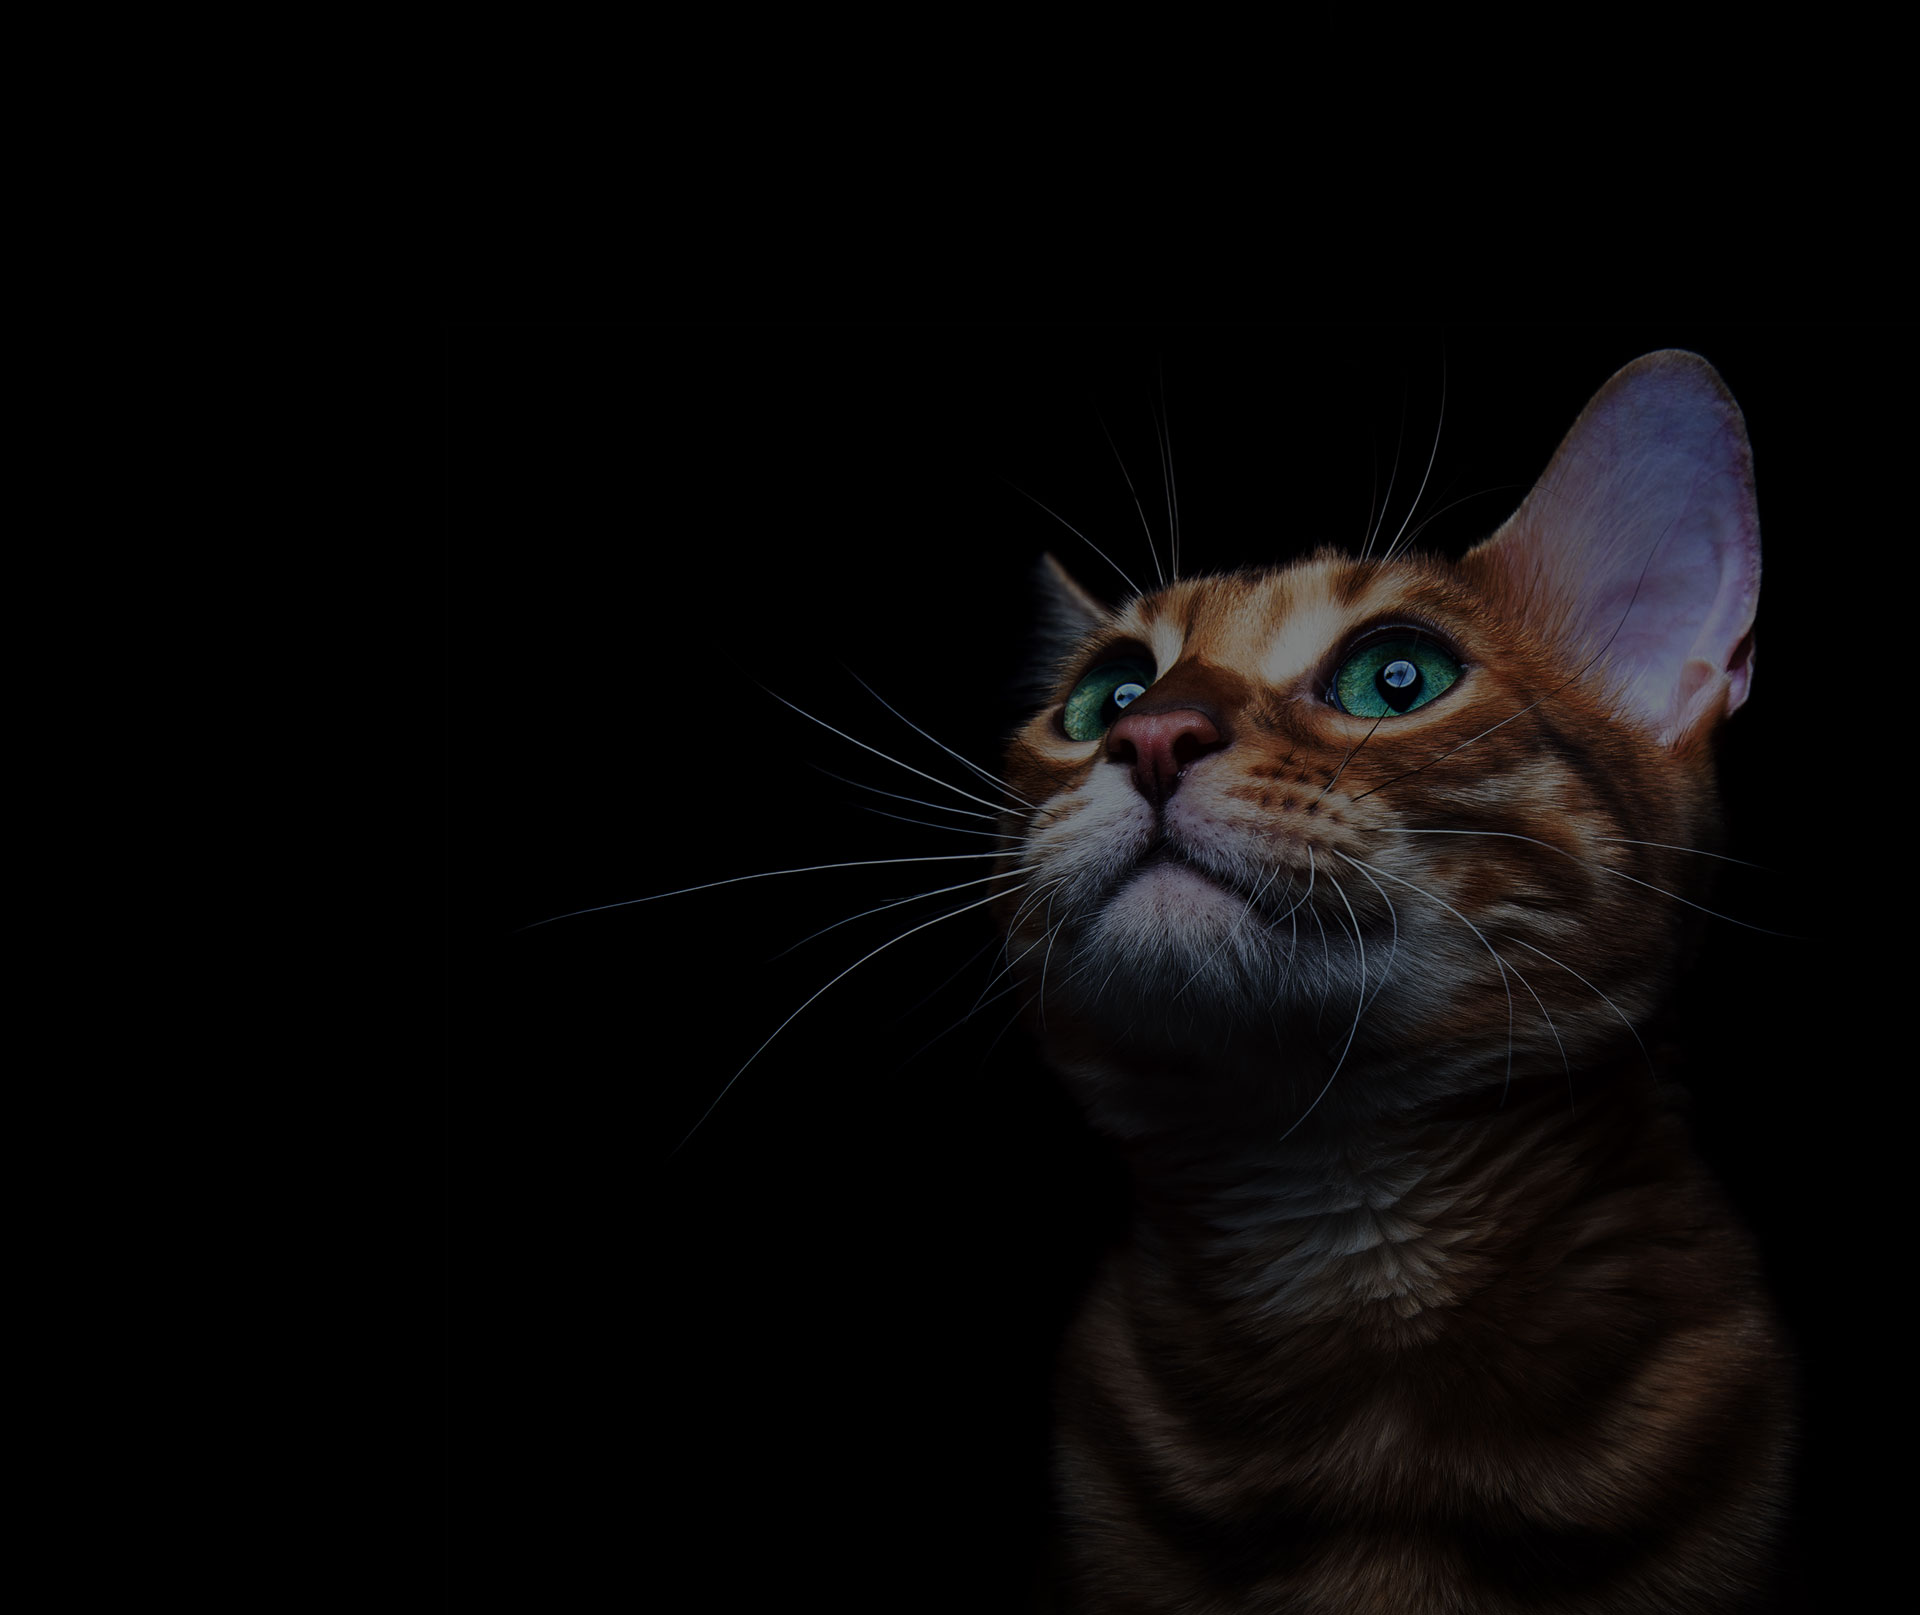 Beautiful bengalensis cat ifs isolated on a black background. - Image